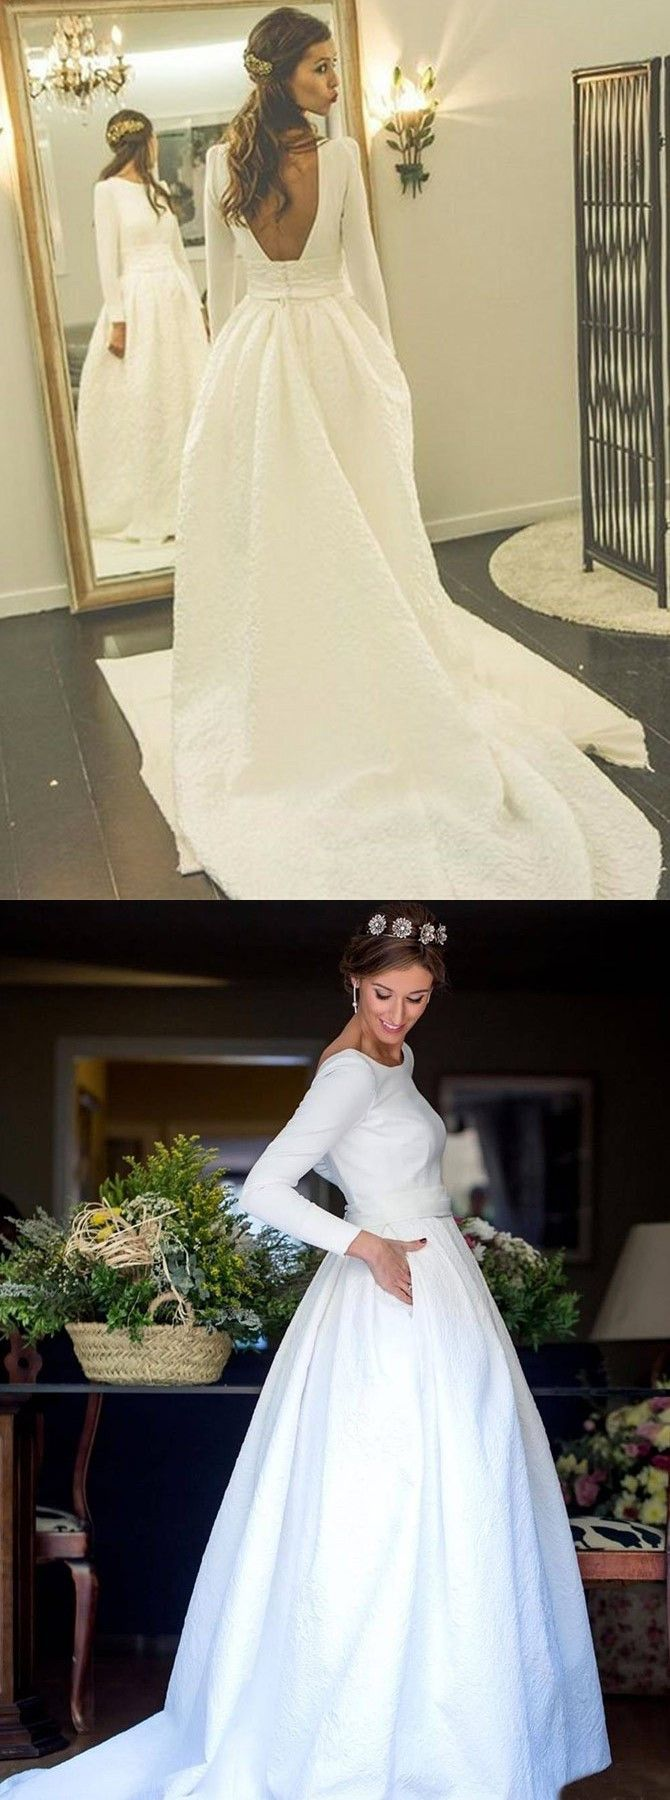 Aline round neck backless satin wedding dress with sleeves in